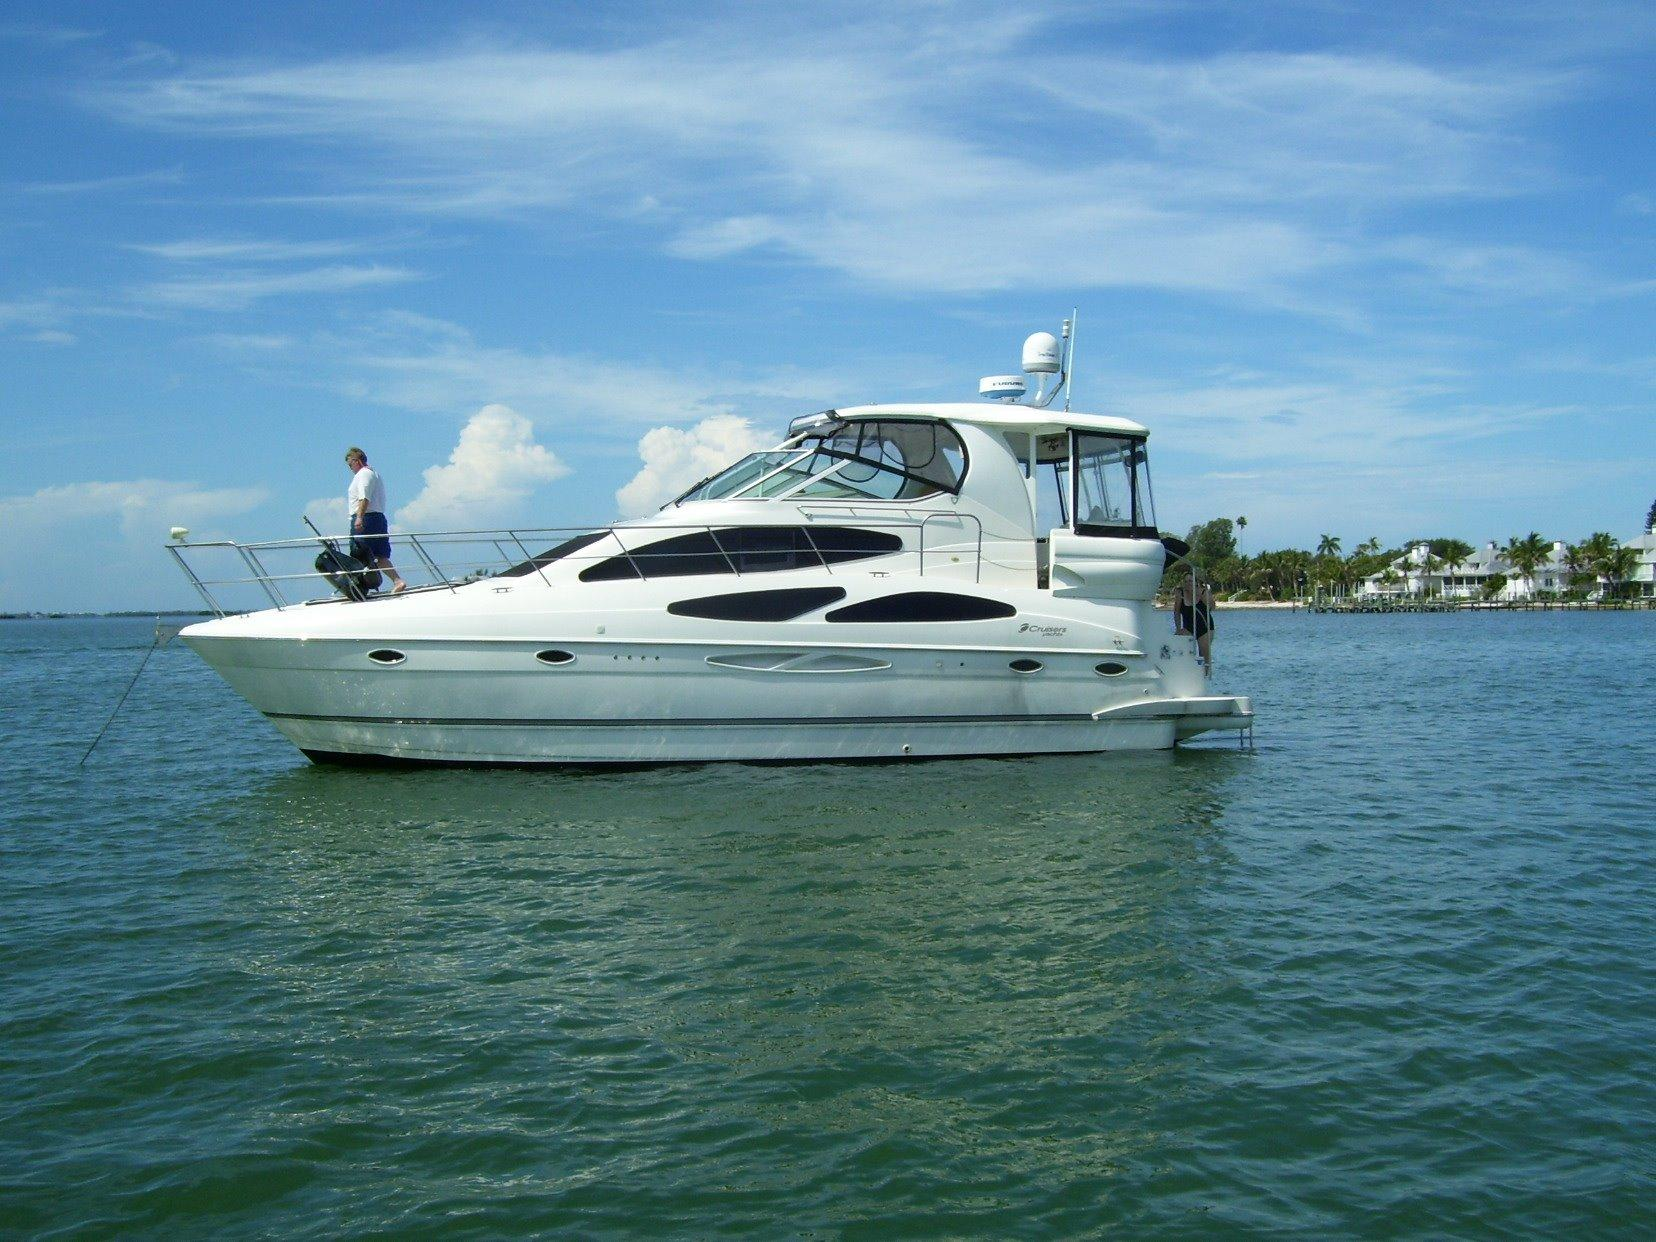 40 Foot Boats For Sale In Tn Boat Listings